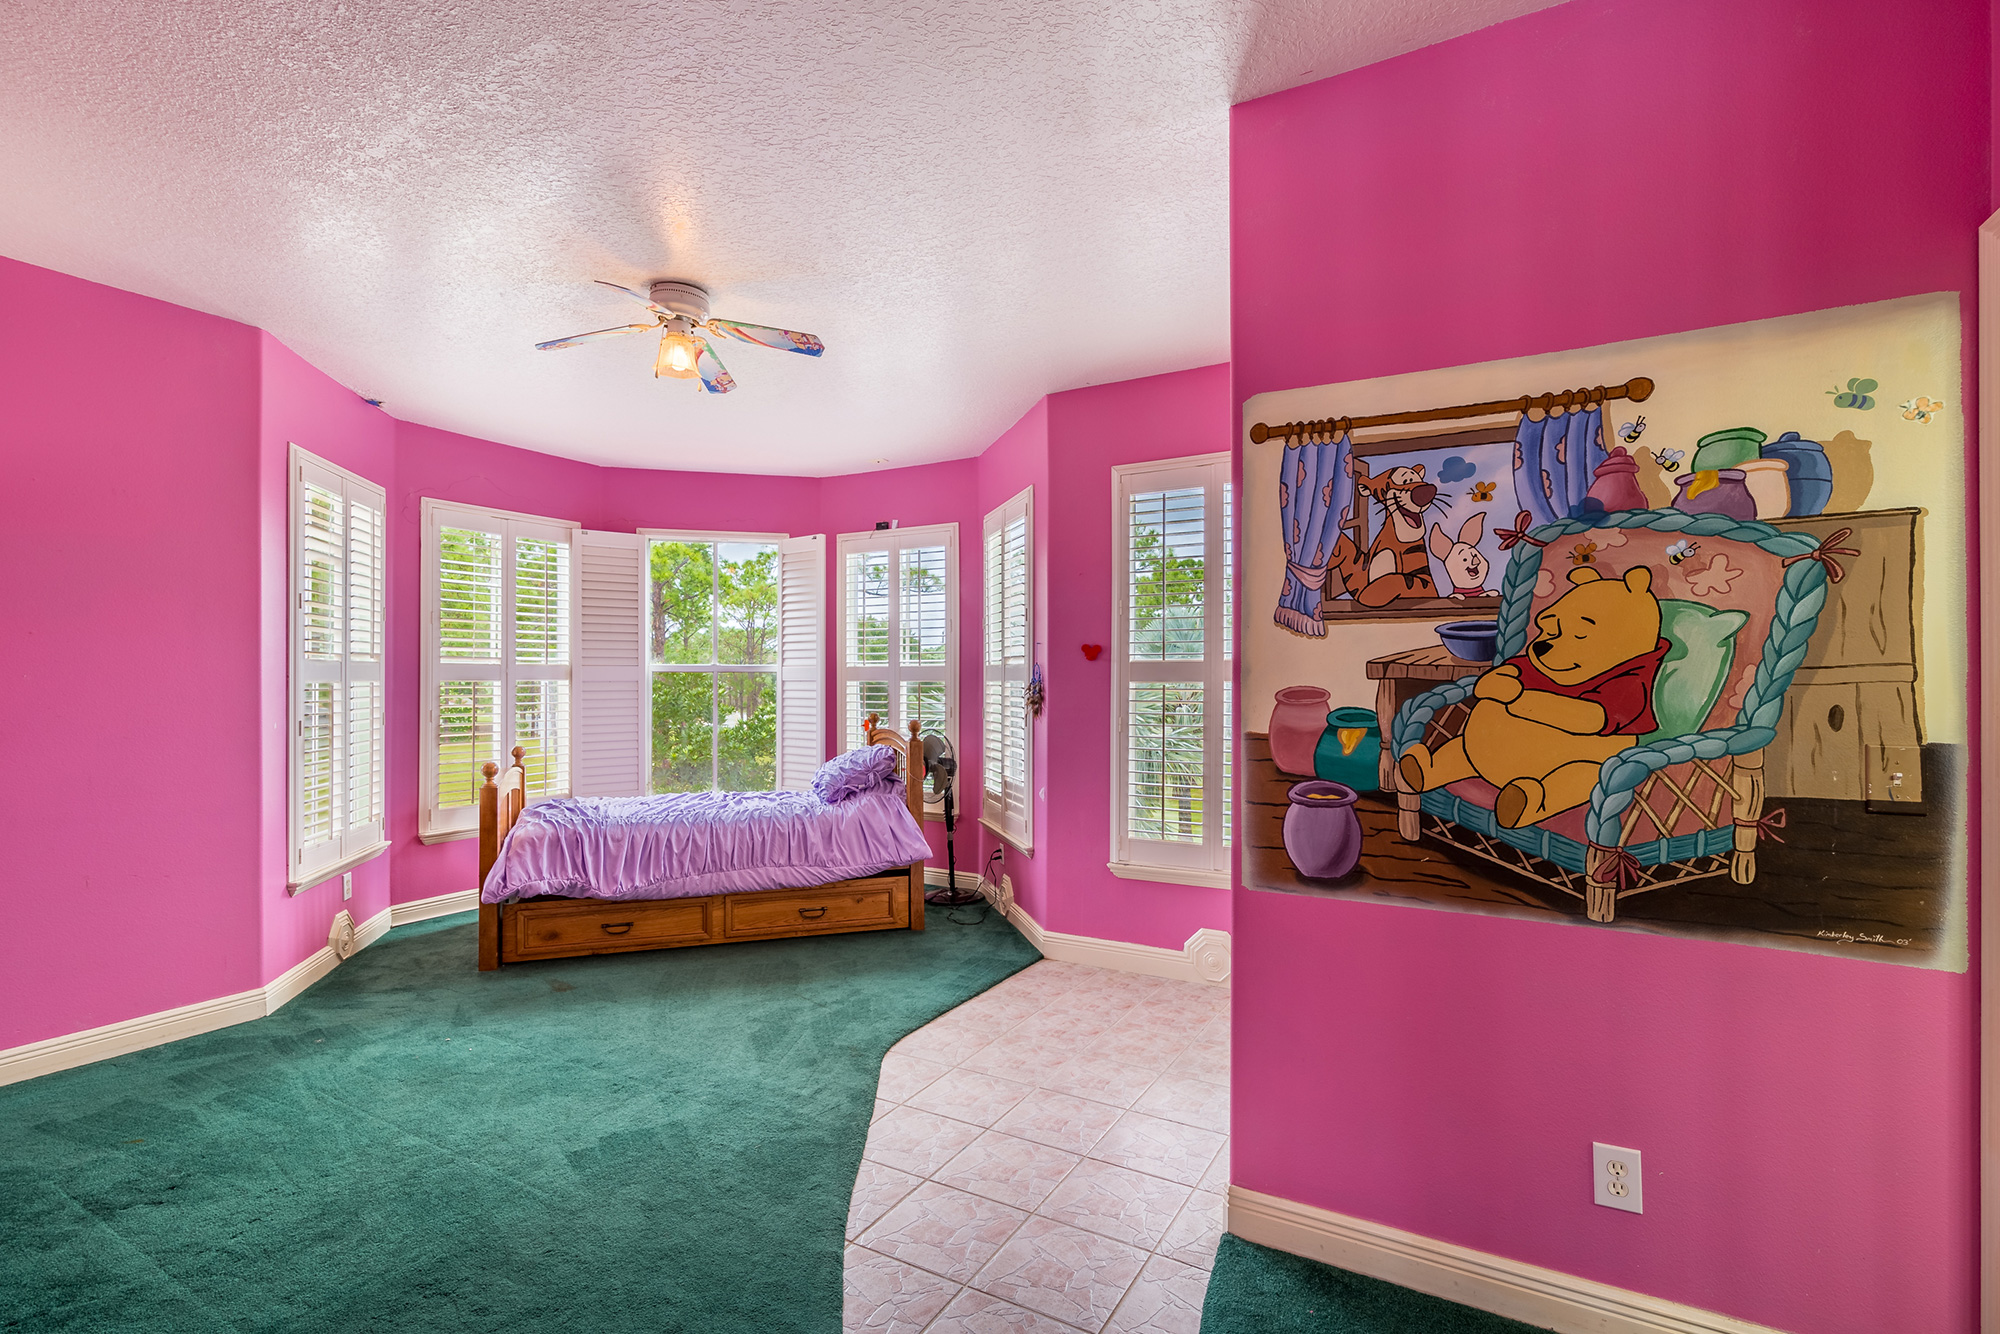 Disney Lovers' Florida House with Two Mickey Mouse–Shaped Pools Hits the Market for $850K disney-house-winnie-the-pooh